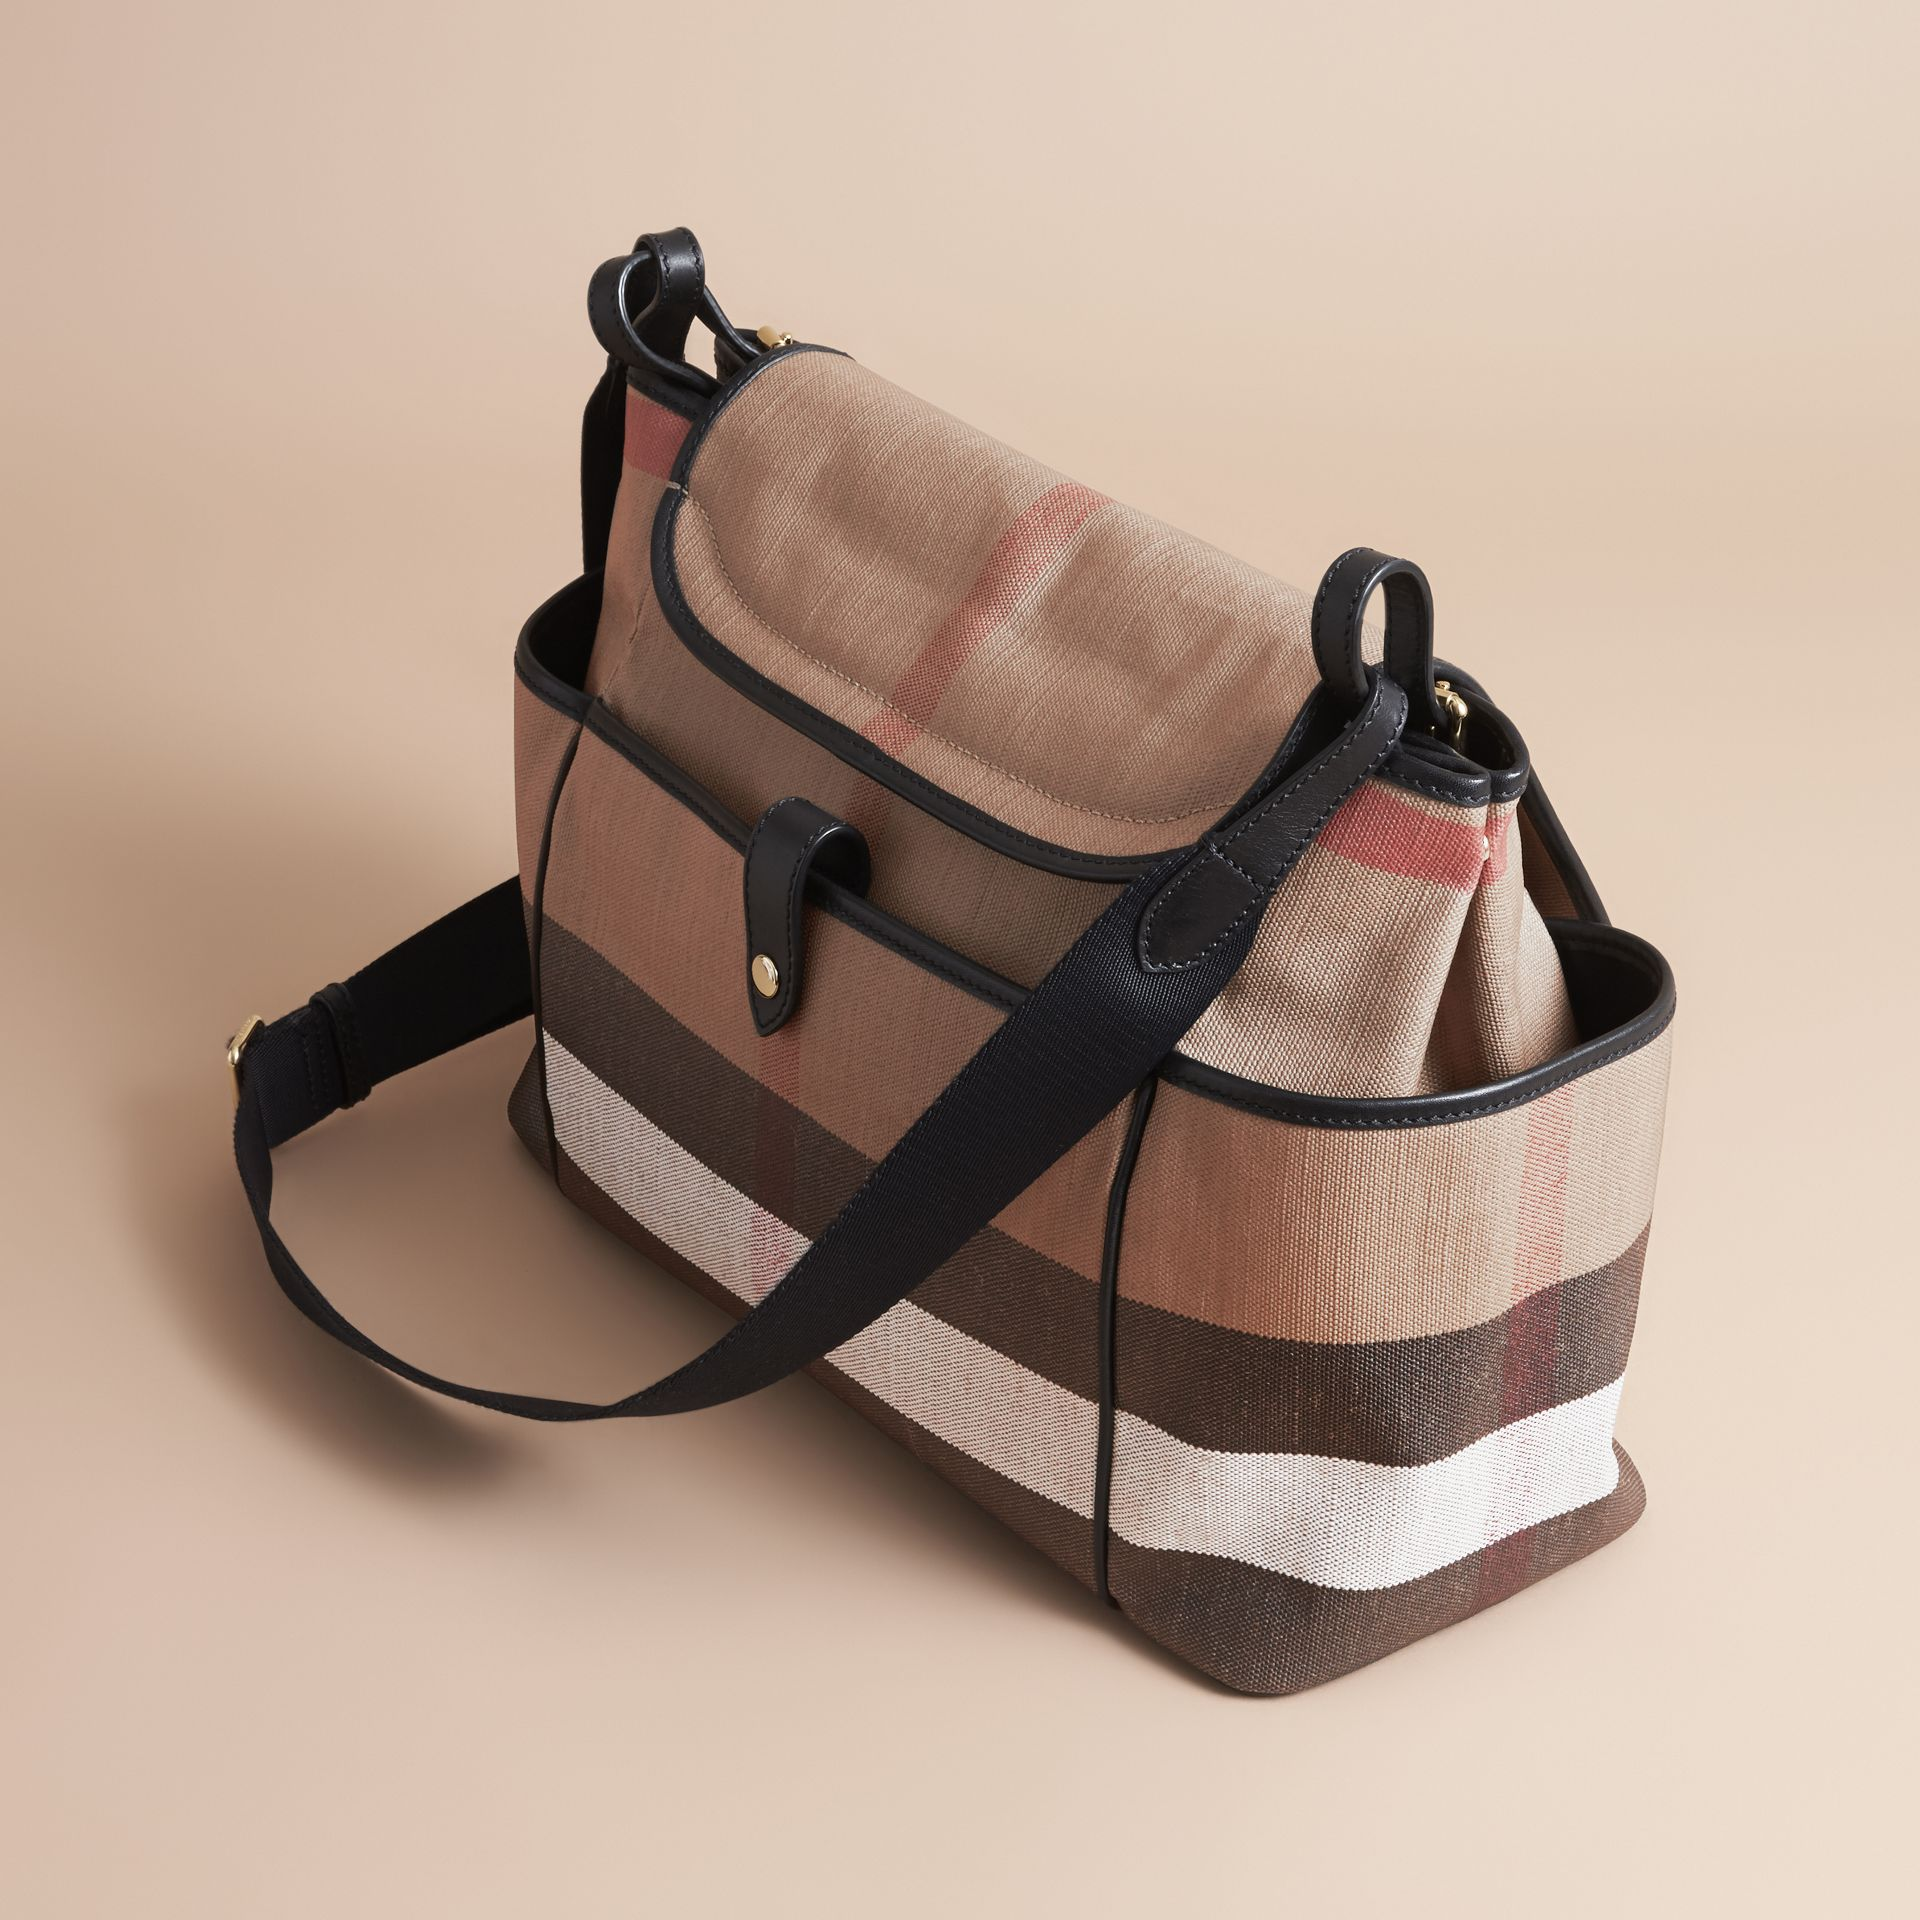 Canvas Check and Leather Baby Changing Shoulder Bag in Black - Children | Burberry - gallery image 2